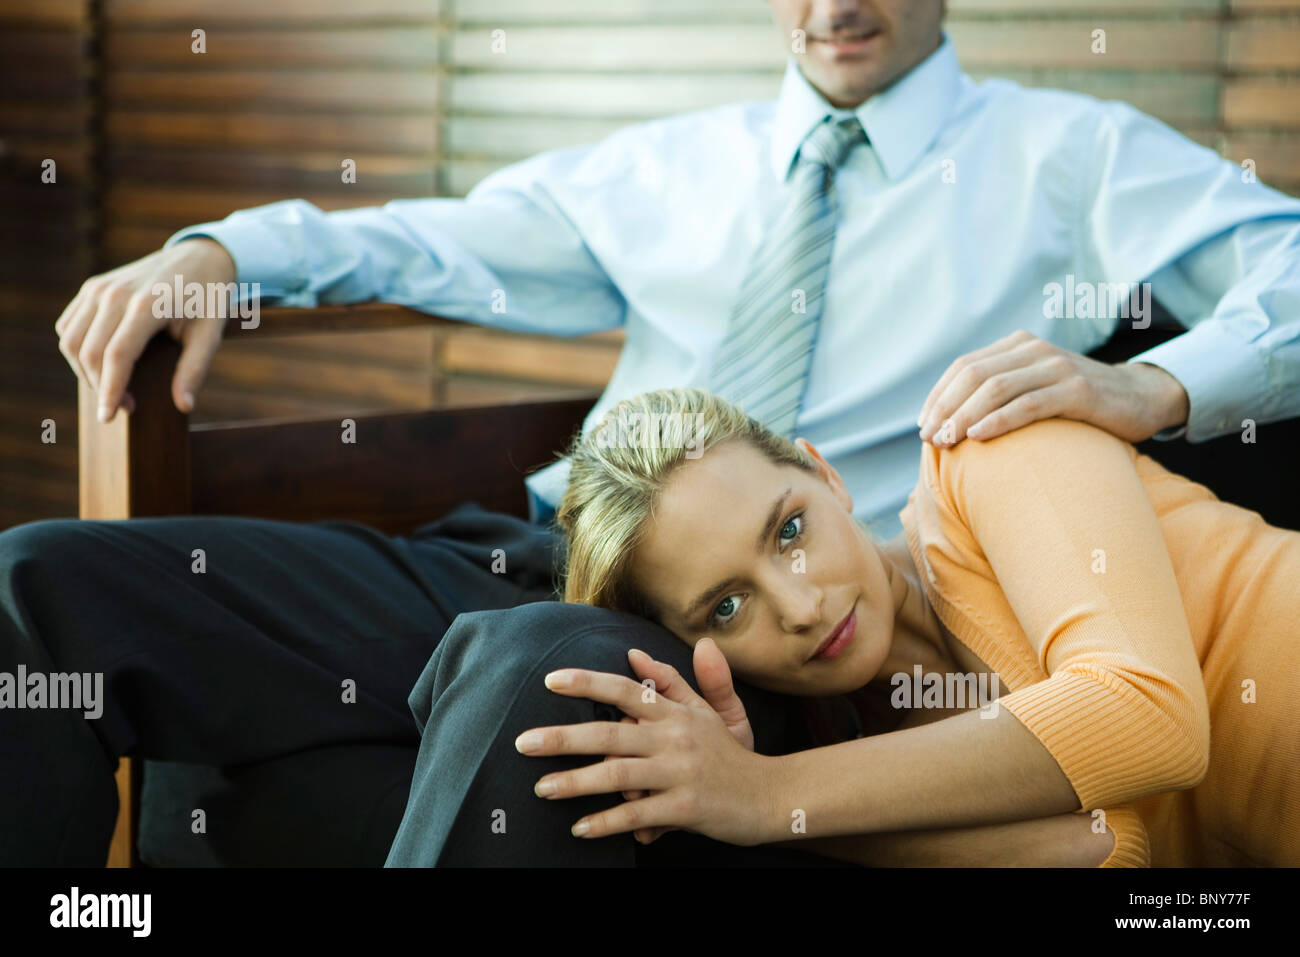 Woman resting her head on man's lap - Stock Image